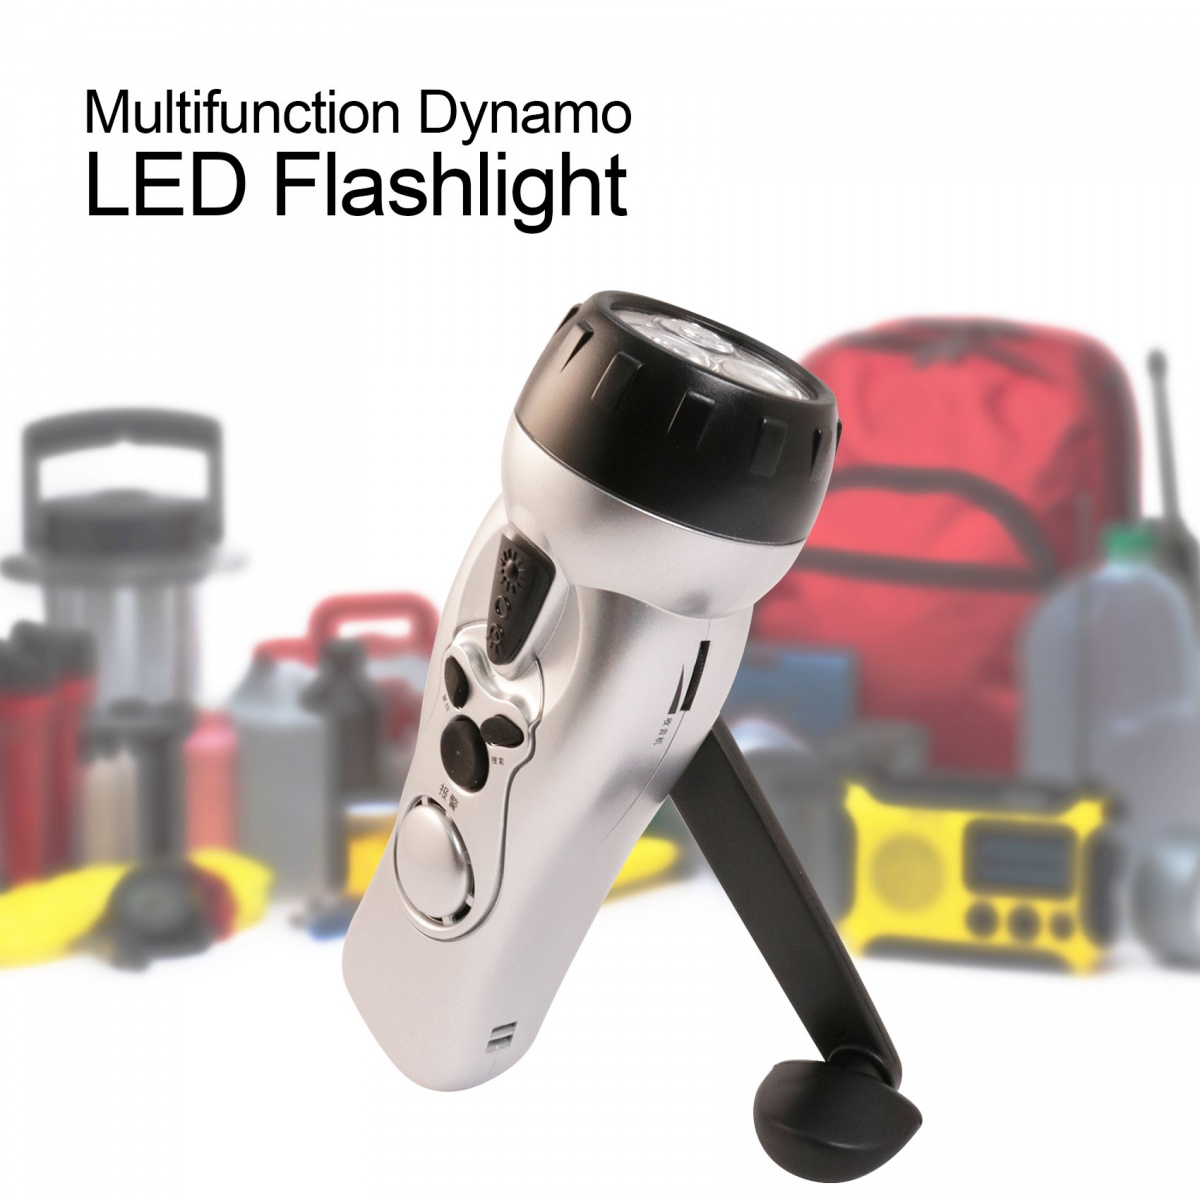 Multifunction Dynamo LED Emergency Flashlight - Silver